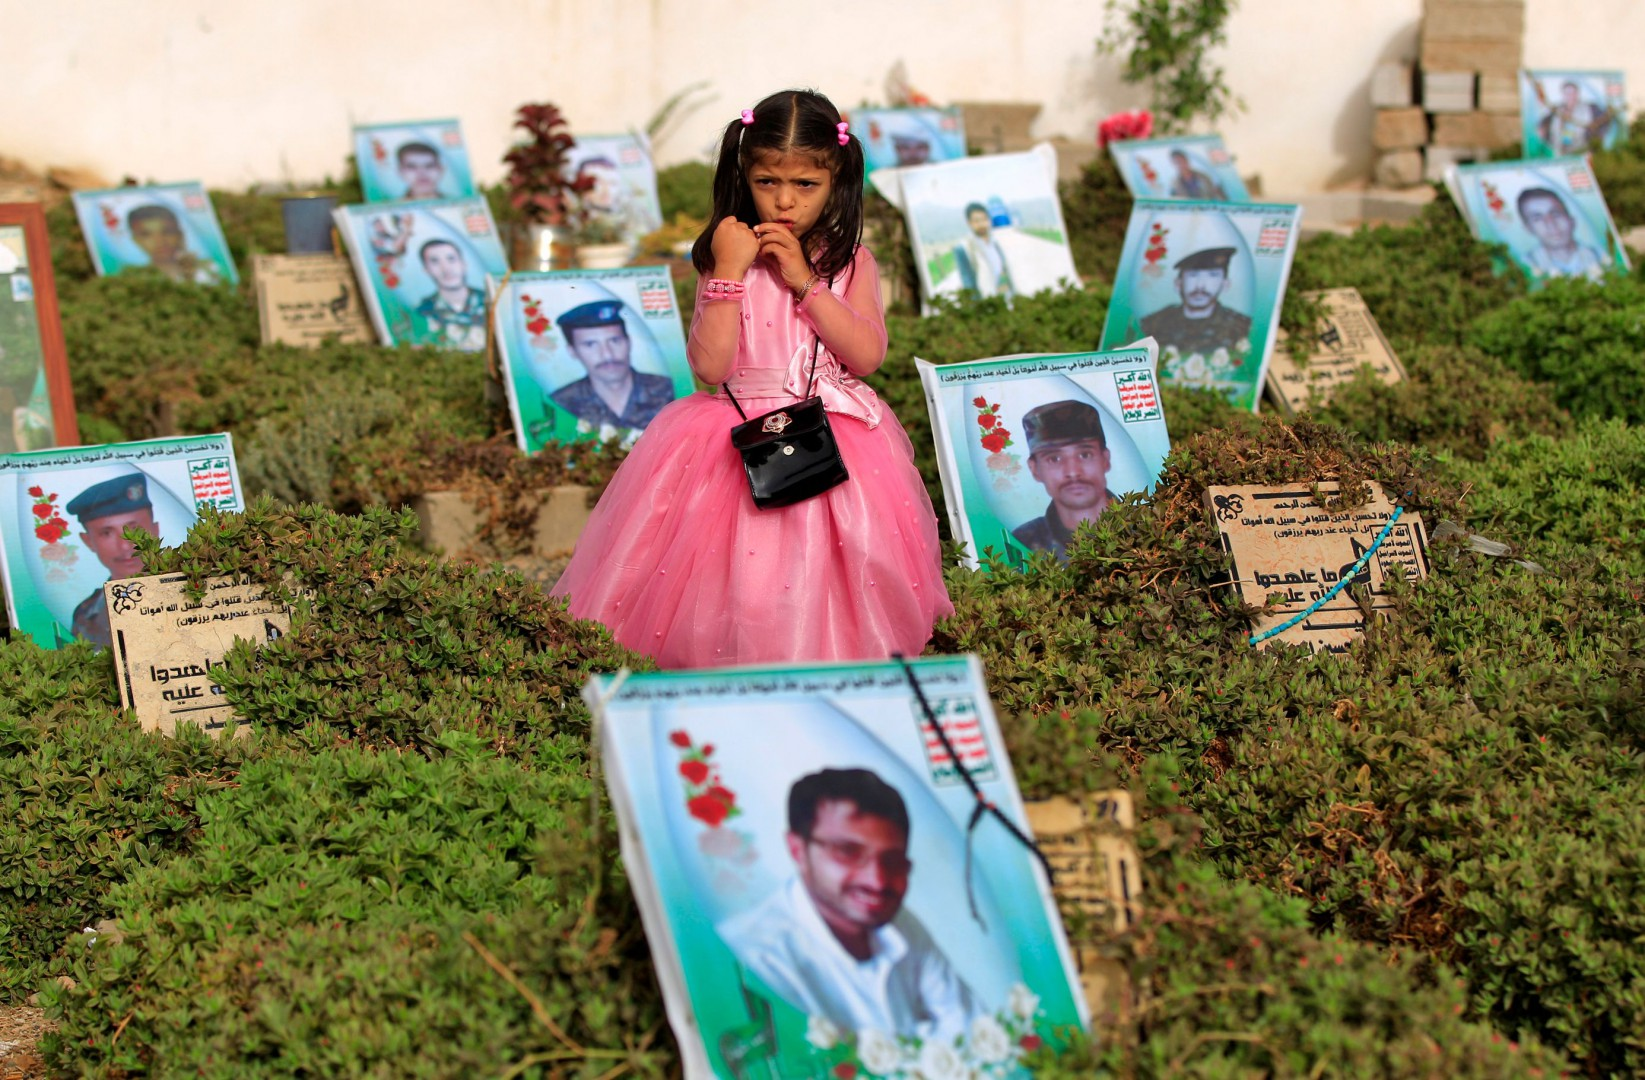 TOPSHOT - EDITORS NOTE: Graphic content / A Yemeni girl stands near the grave of a relative in a cemetery in the capital Sana'a on June 15, 2018. Muslims worldwide celebrate Eid al-Fitr marking the end of the fasting month of Ramadan. / AFP PHOTO / Mohammed HUWAIS